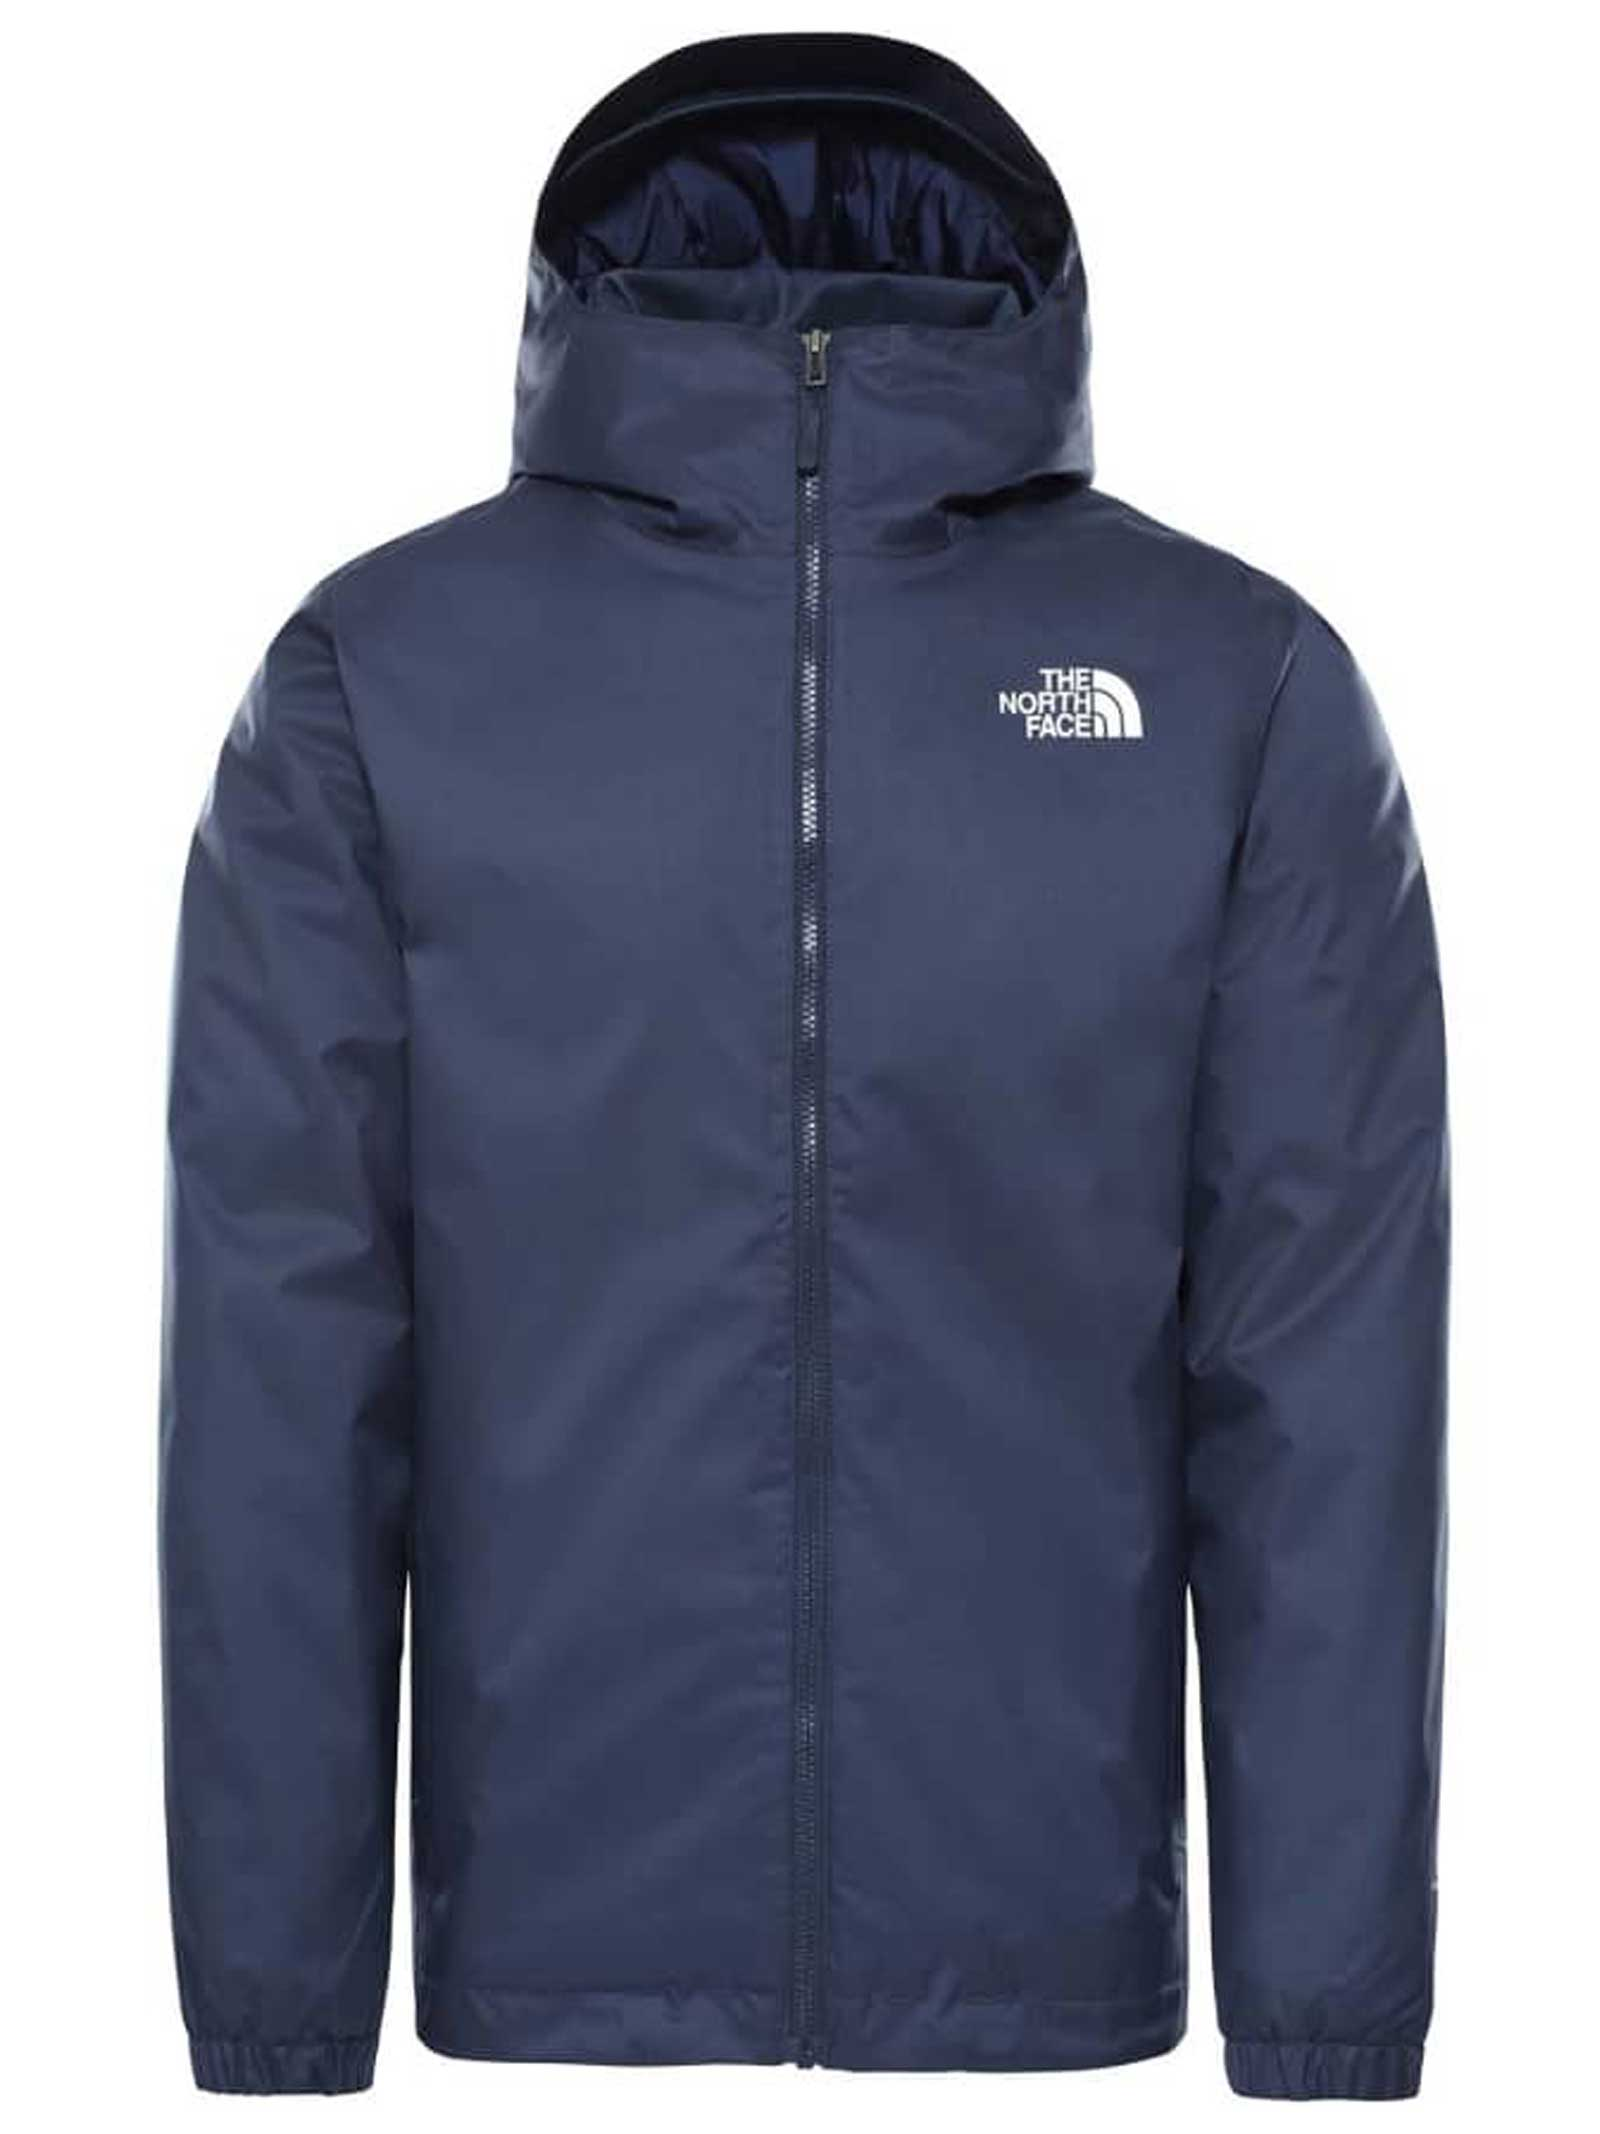 GIUBBOTTO THE NORTH FACE THE NORTH FACE | Giubbotto | NF00C302M6S